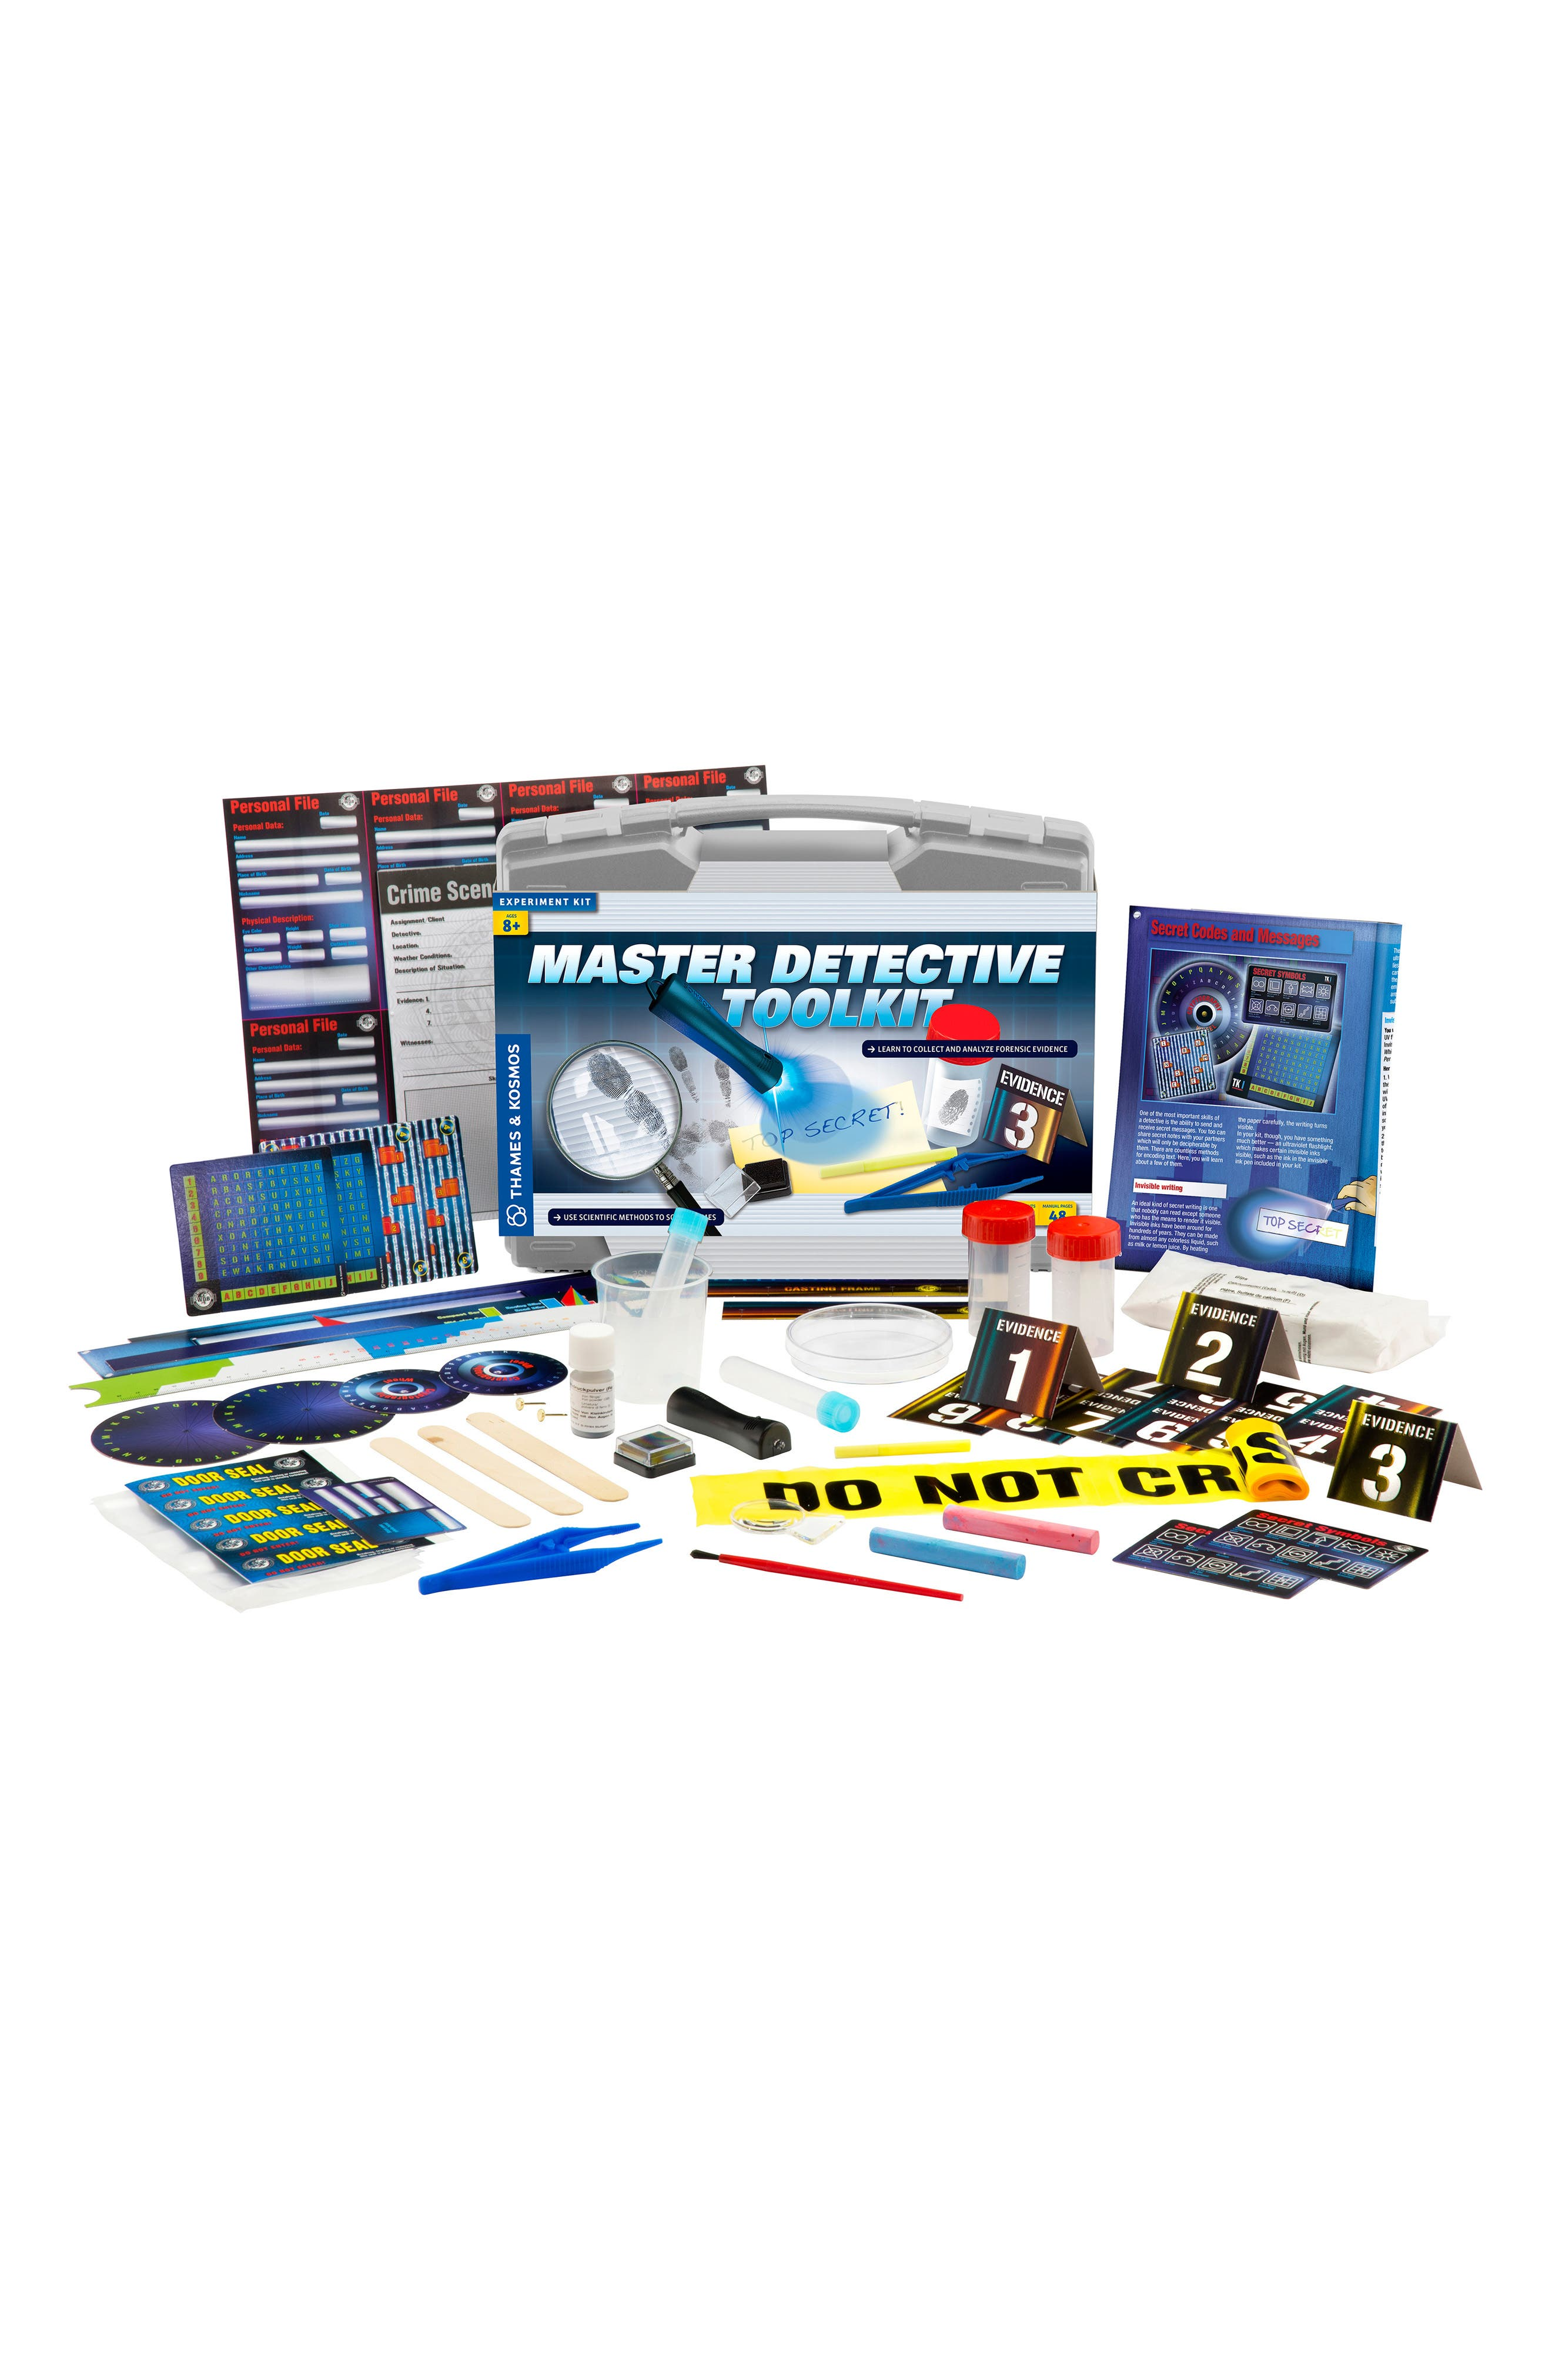 'Master Detective Toolkit' Experiment Kit,                             Alternate thumbnail 4, color,                             GREY